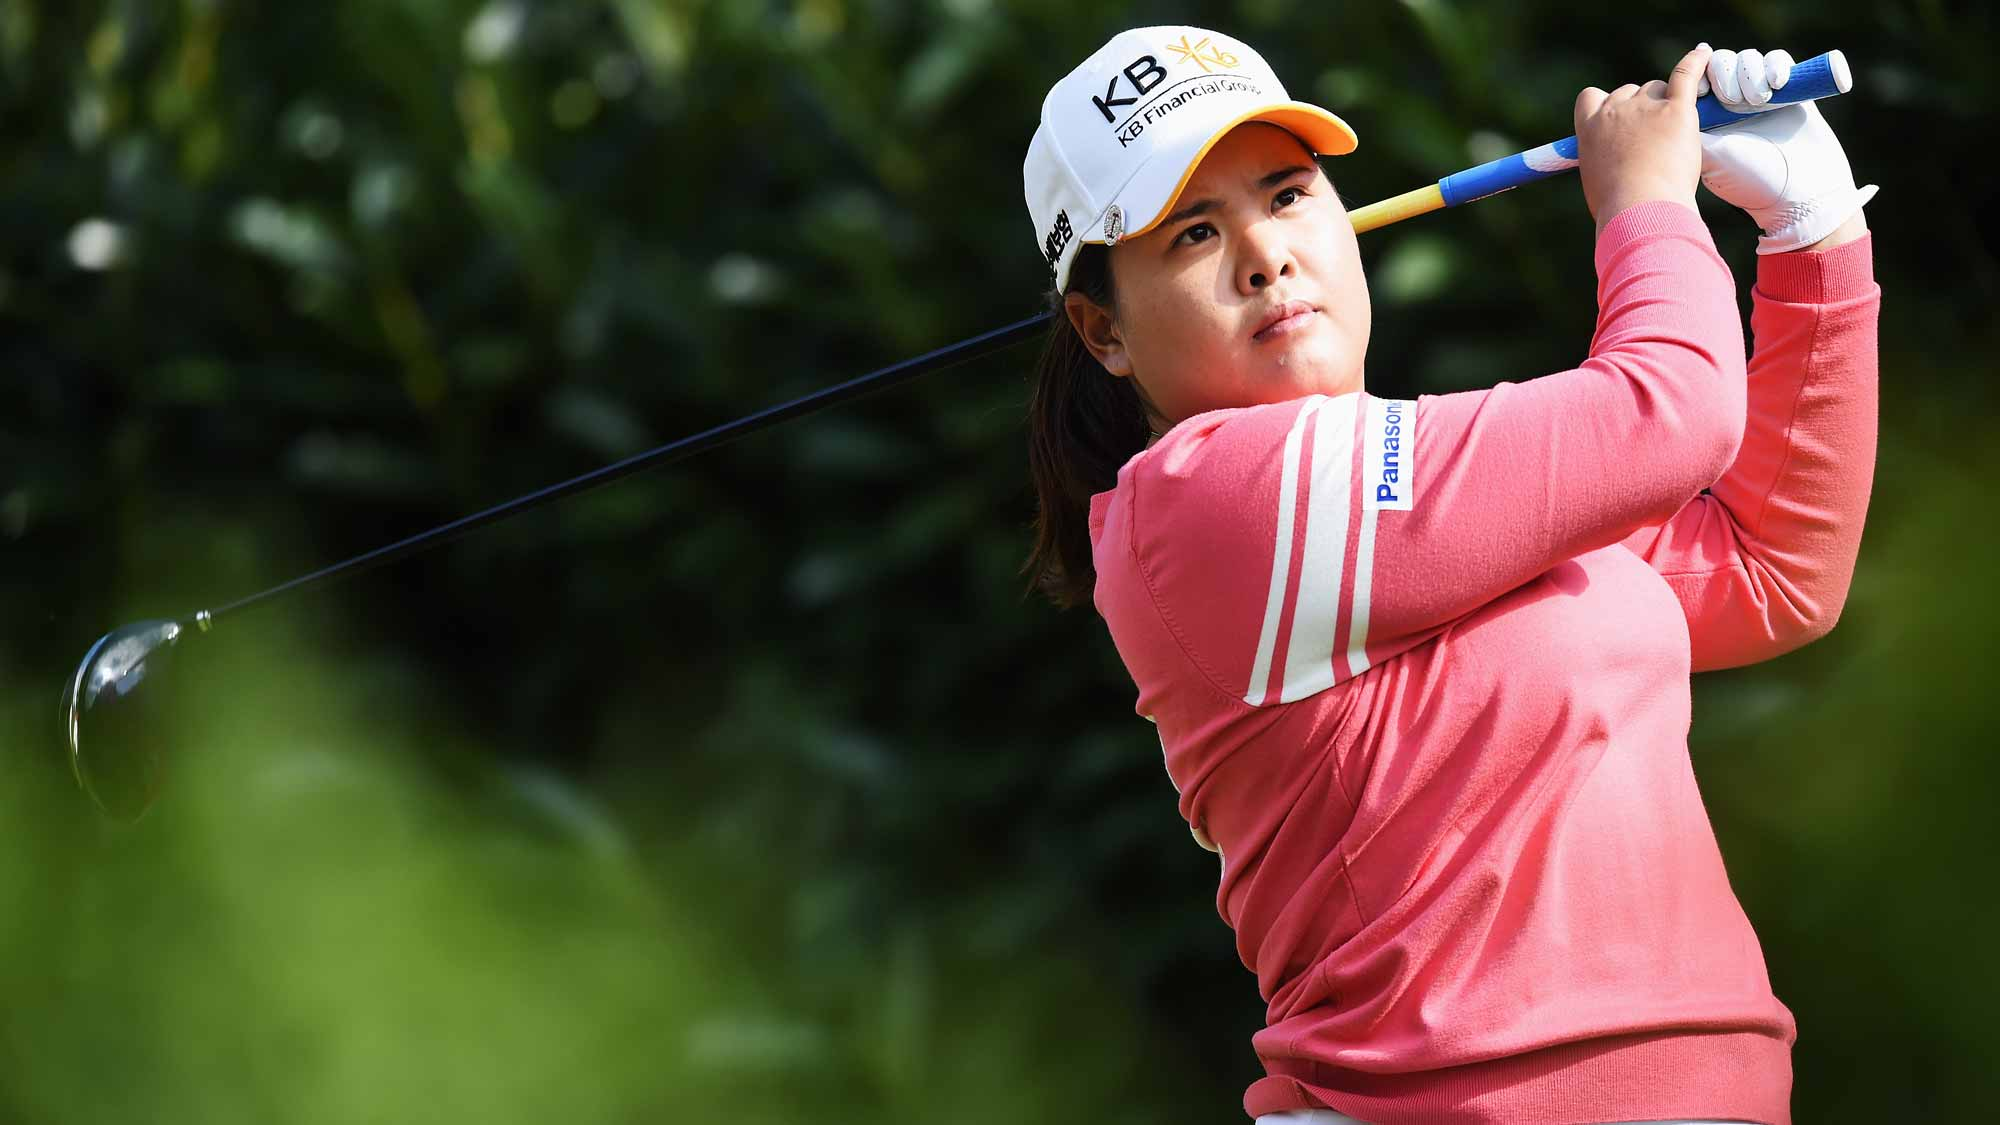 Inbee Park during the second round of the Evian Championship